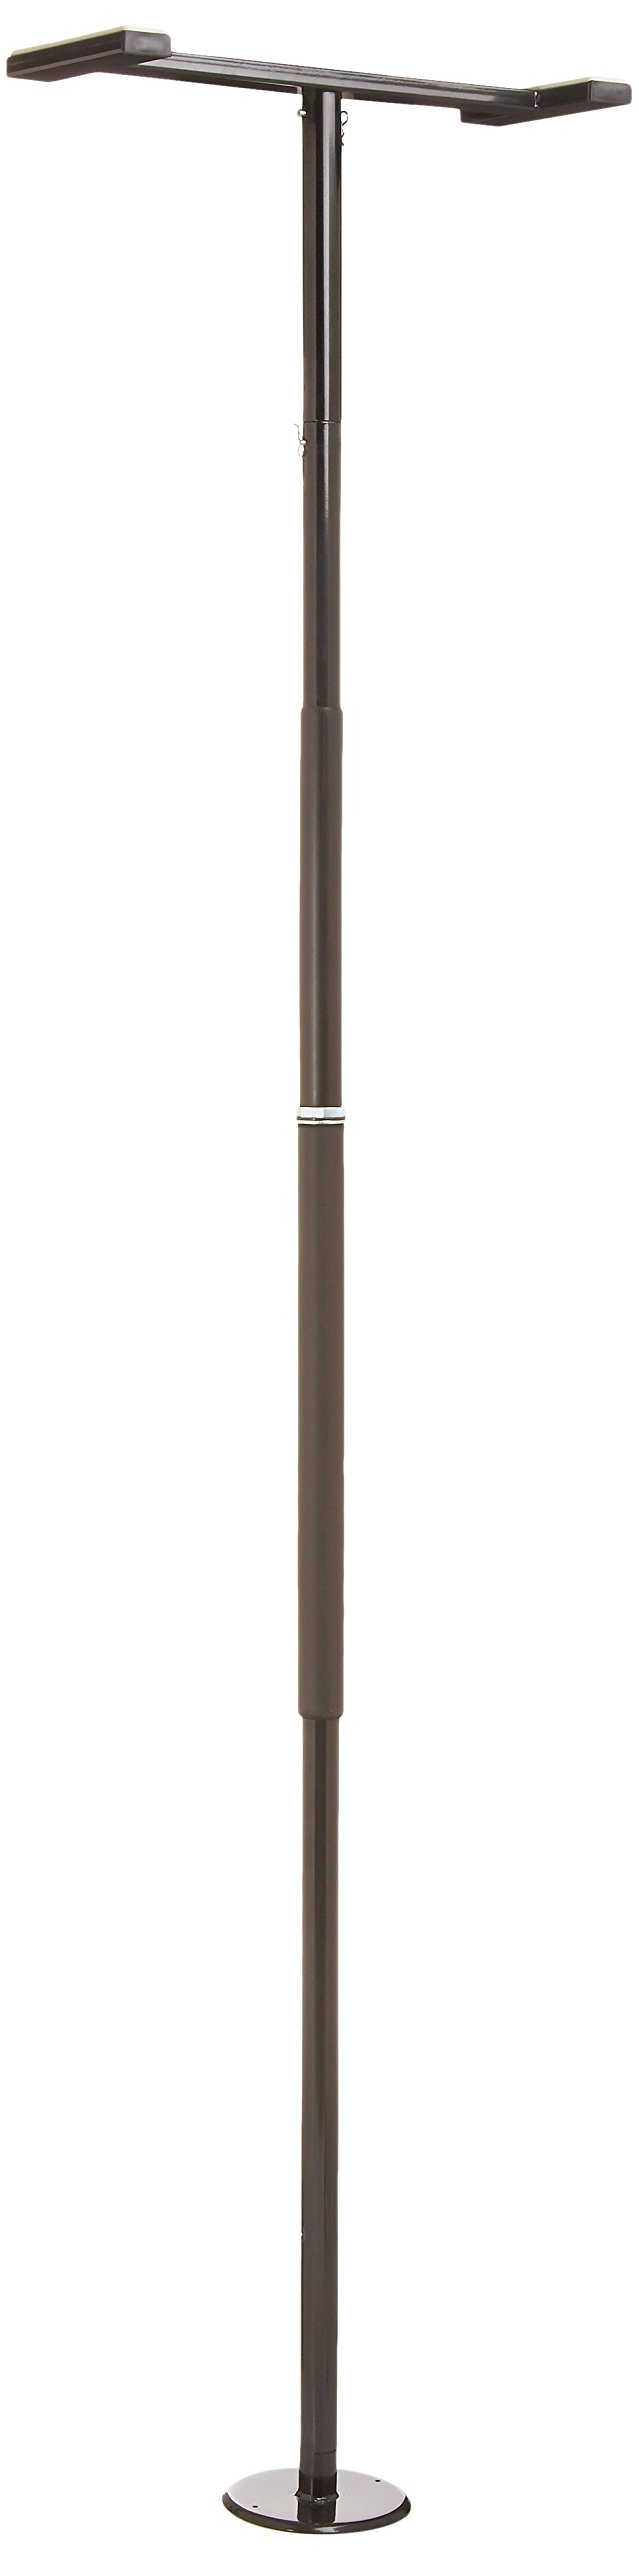 Stander Security Pole - Tension Mounted Elderly Transfer Pole + Bathroom Aids to Daily Living & Assist Grab Bar - Metallic Black by Stander